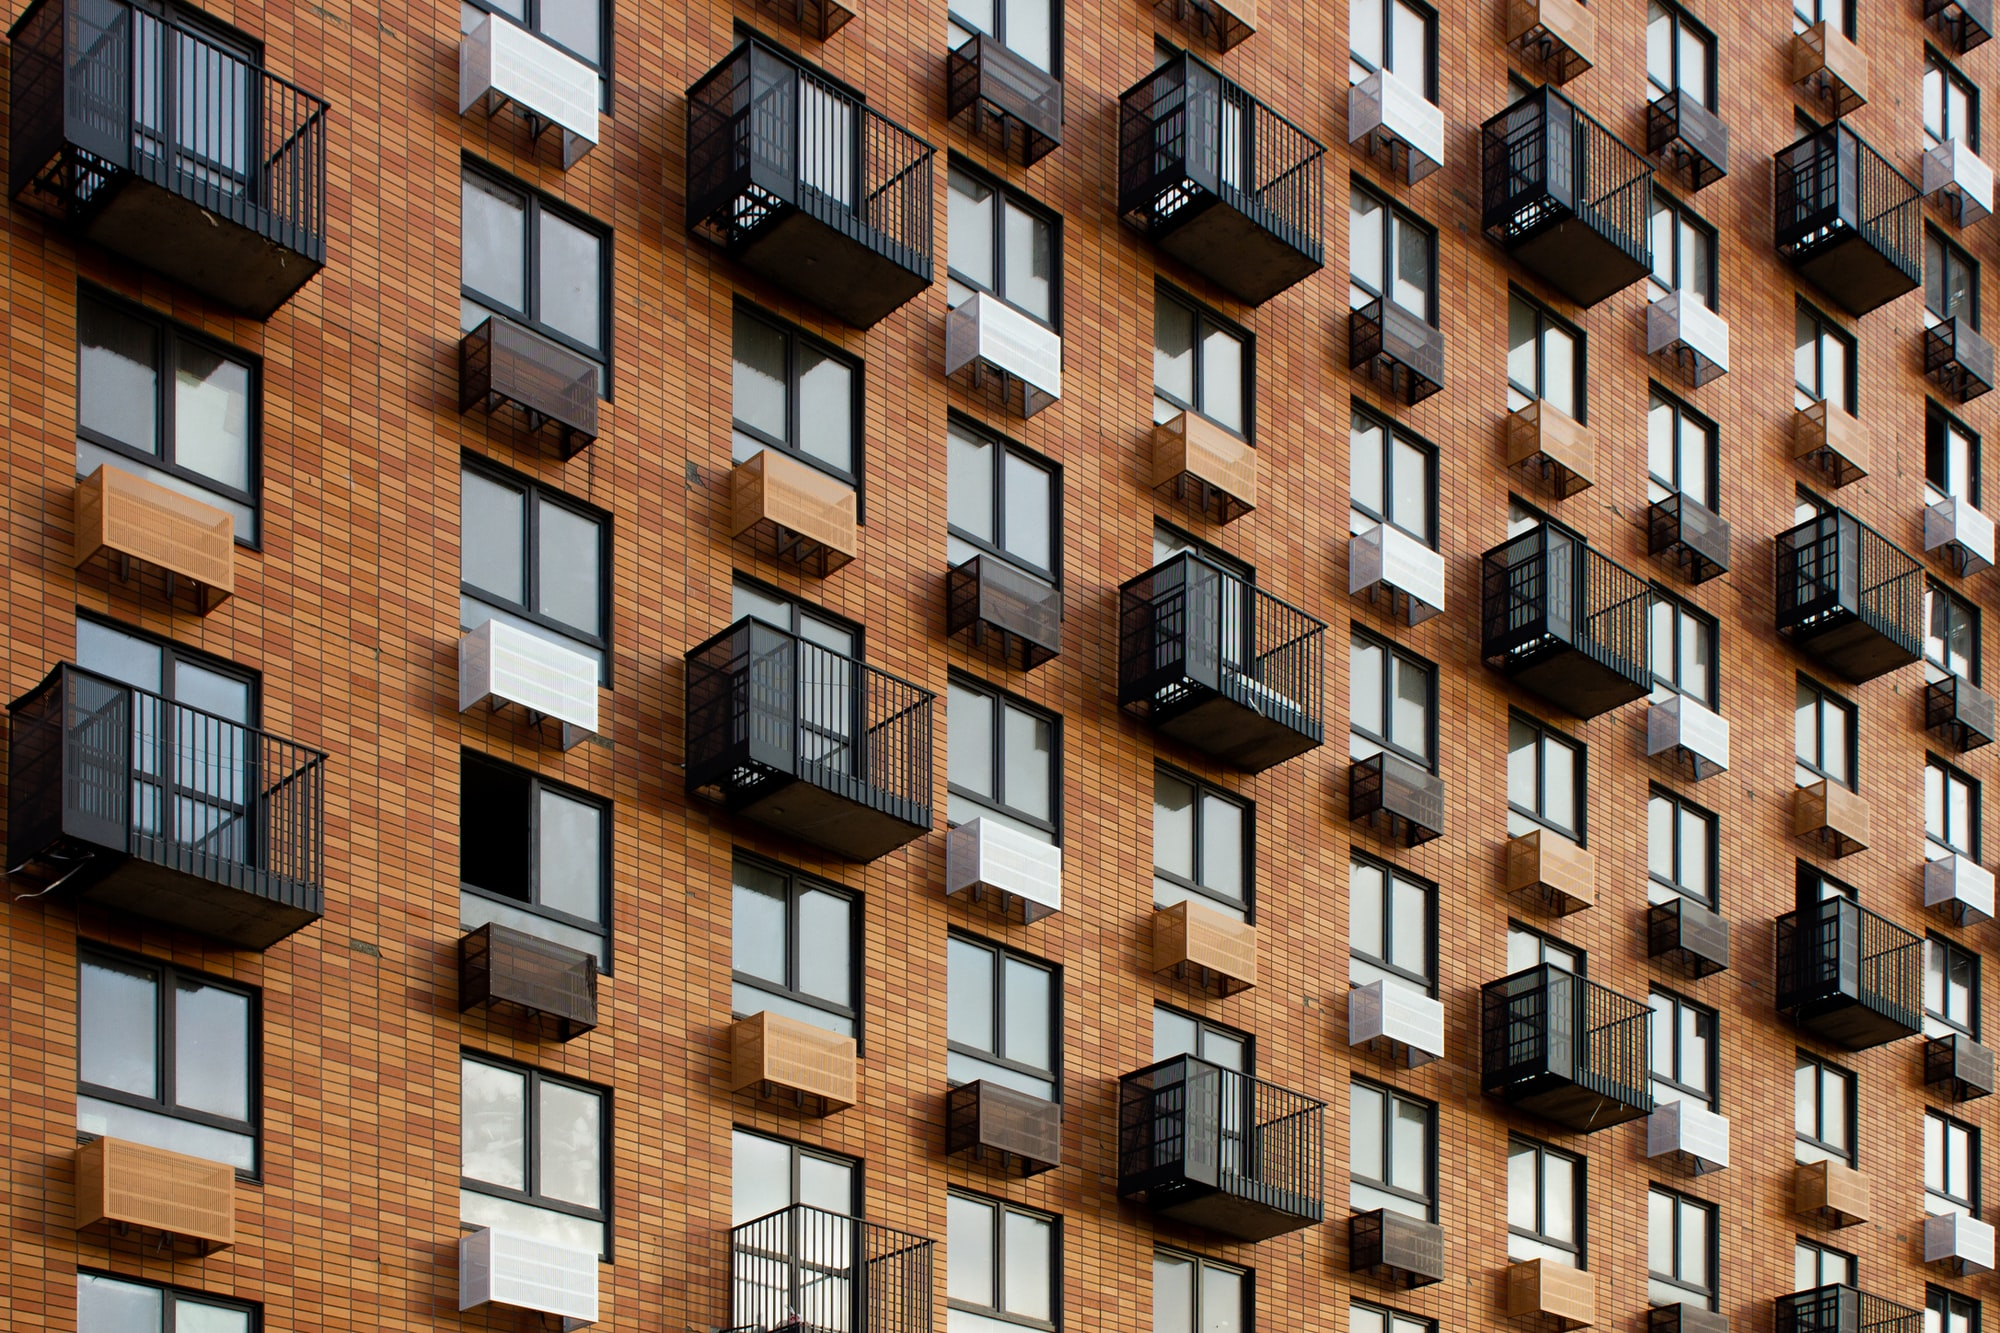 Making it easier to build low-income housing